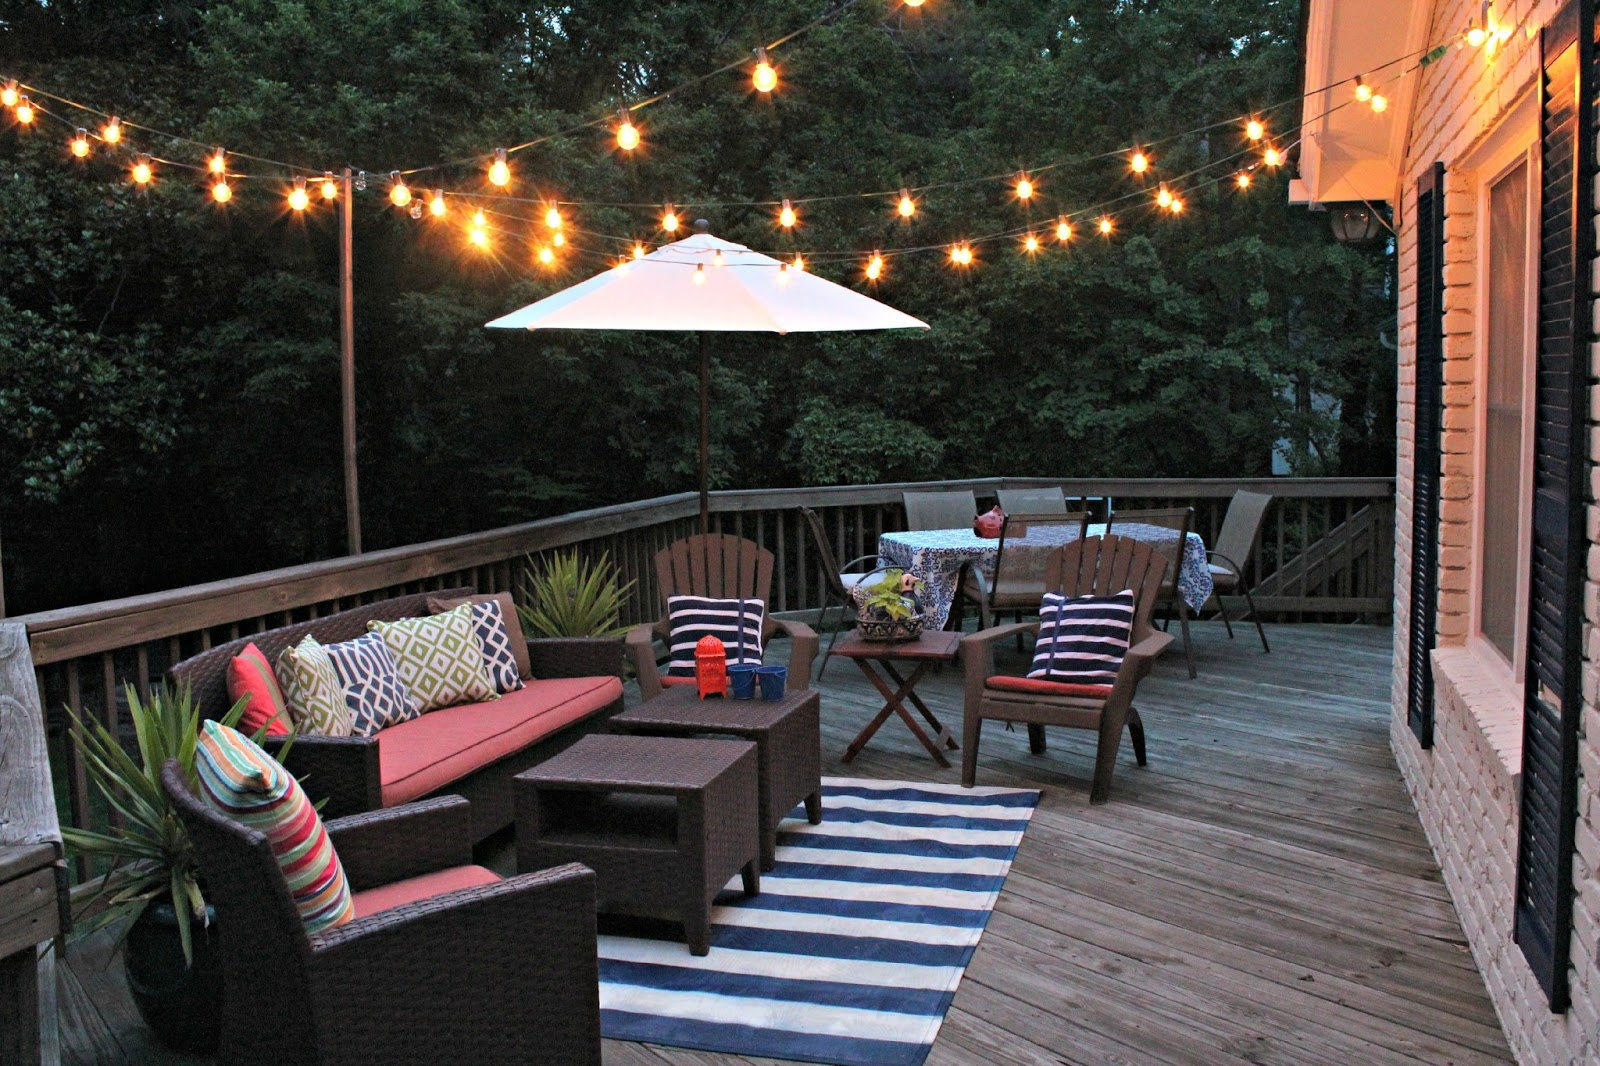 Spring projects living in pursuit Patio and deck lighting ideas